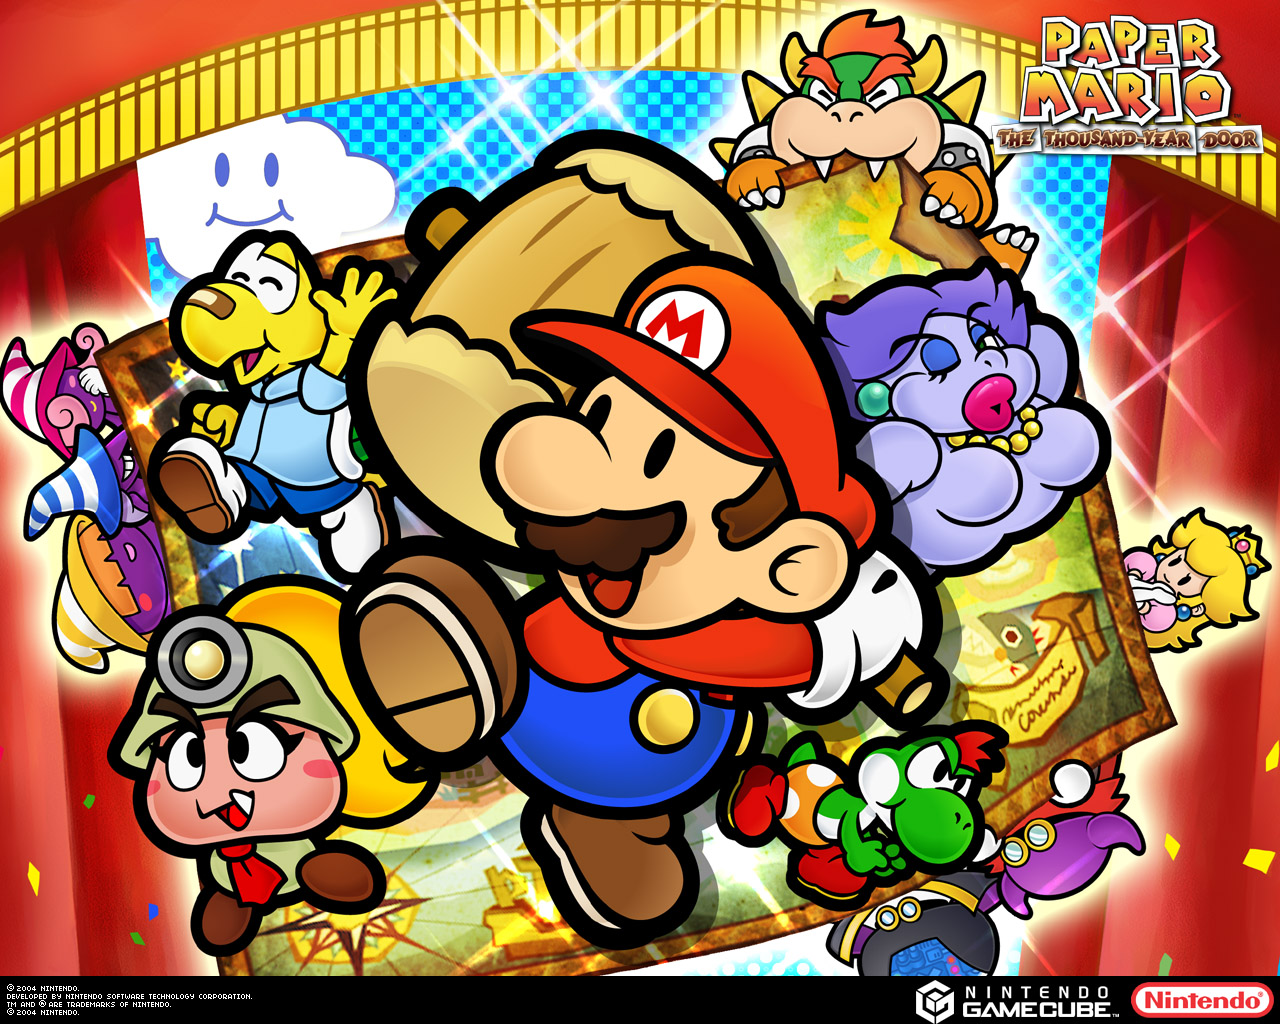 [Imagen: paper-mario-the-thousand-year-door.jpg]